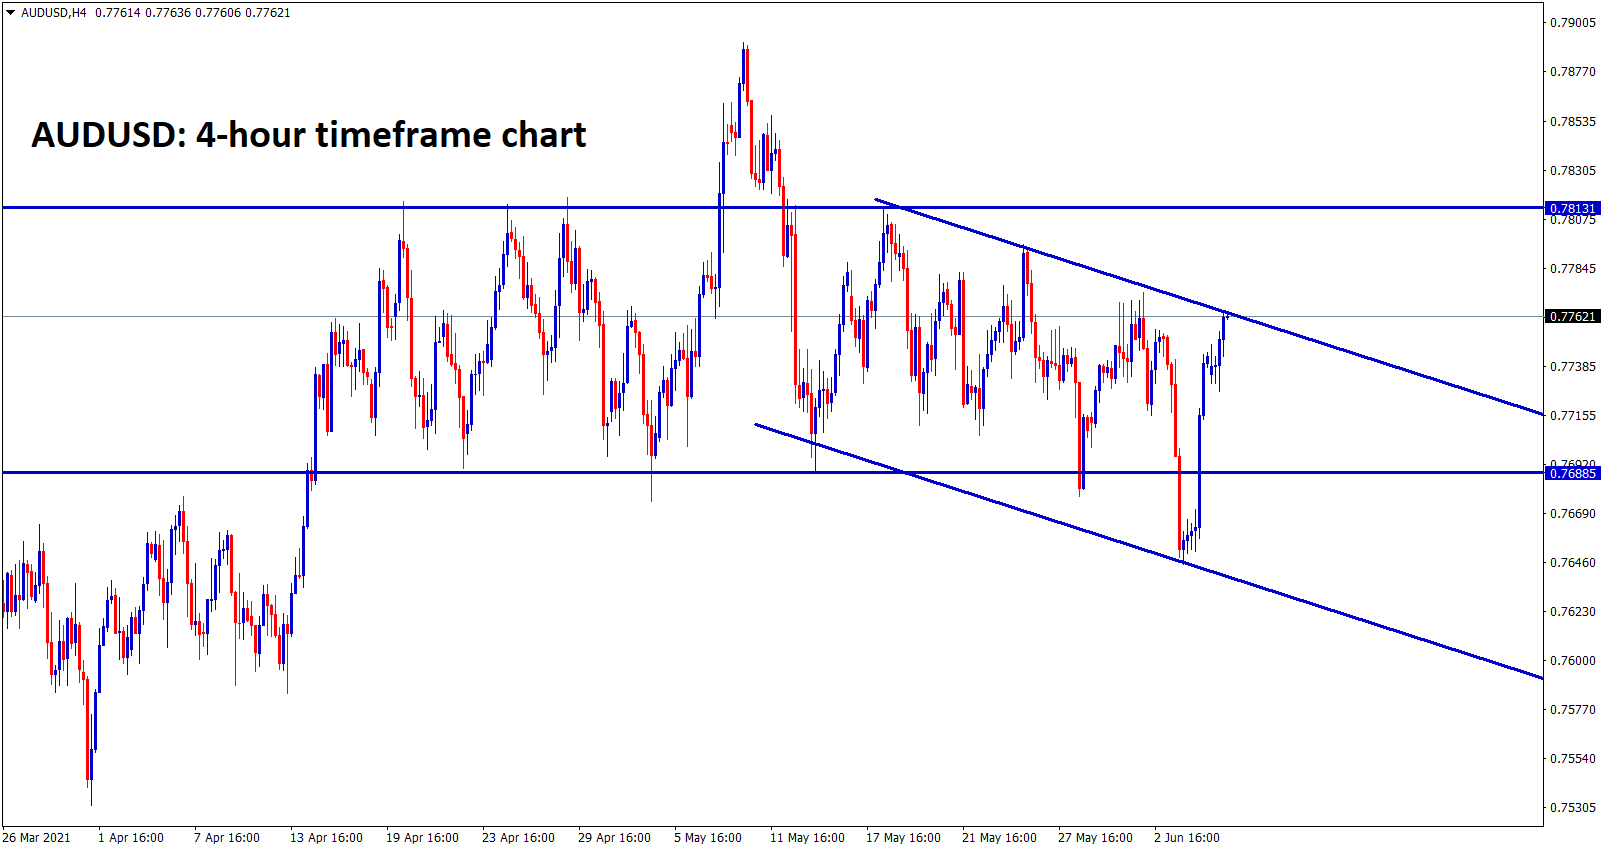 AUDUSD is moving between the specific price range for long time